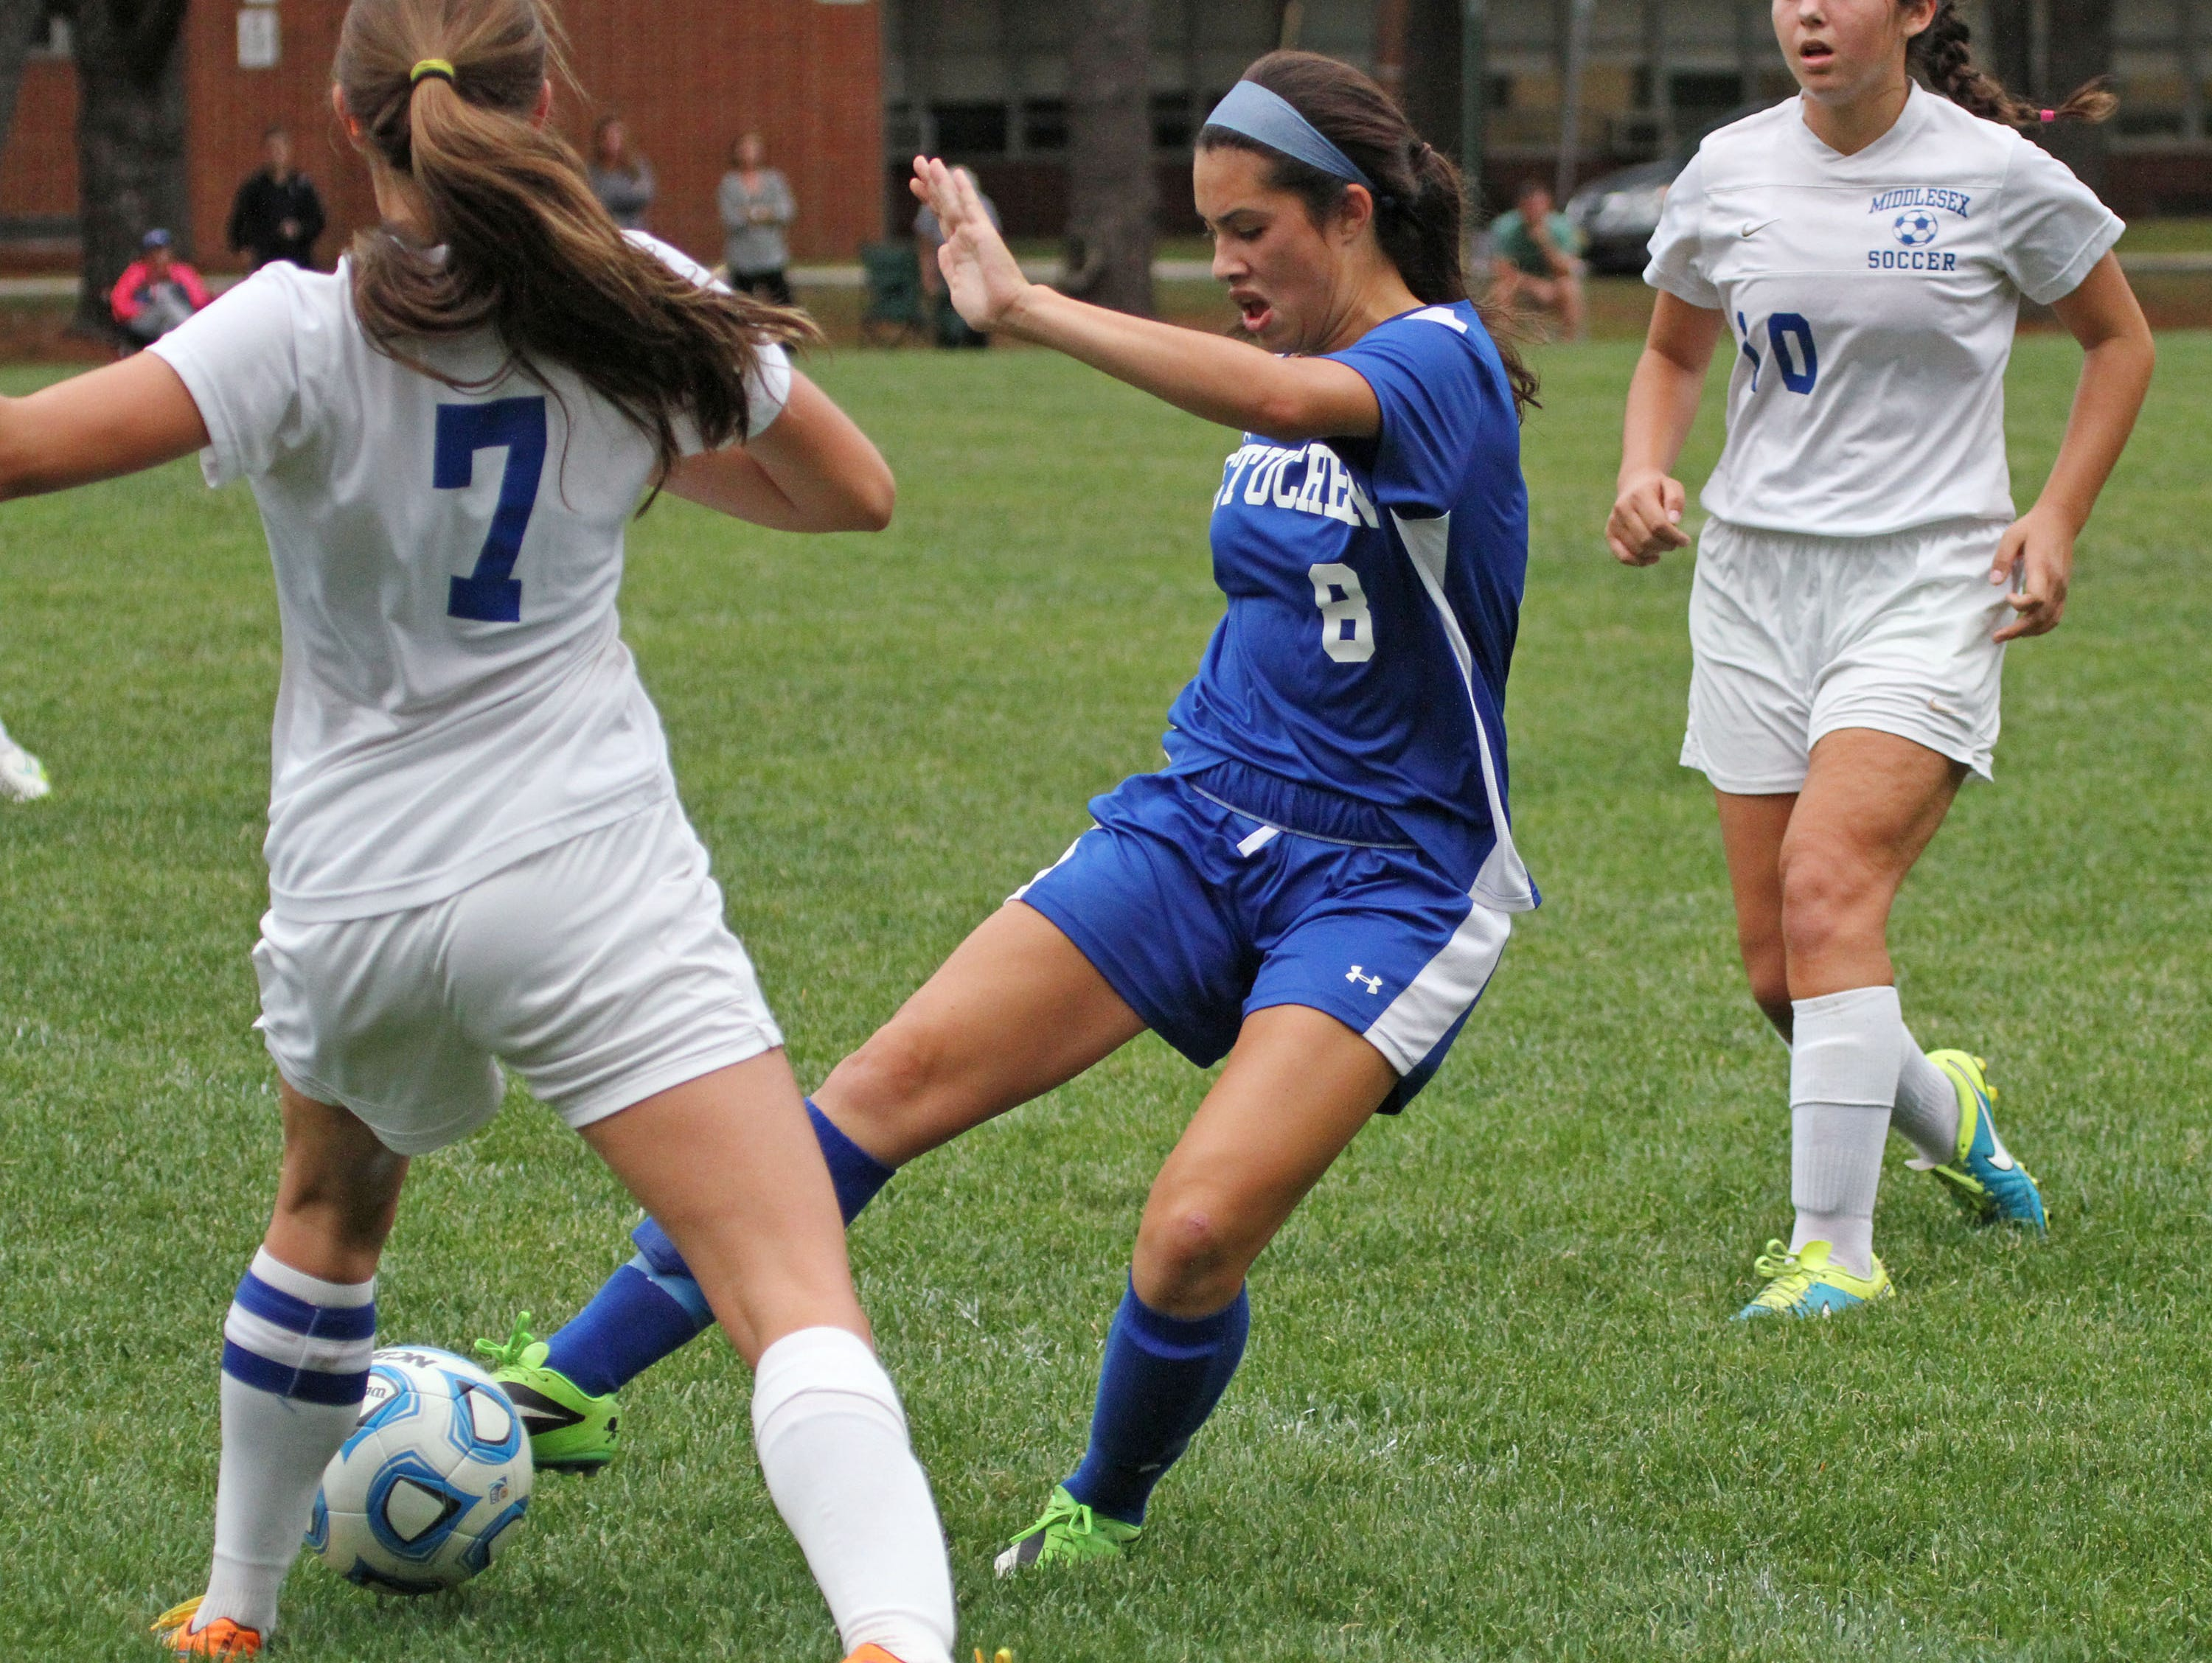 Metuchen's Taylor Hueston, center, controls the ball as Katie LaCapria, left, challenges in girls soccer game at Middlesex. Hueston scored for her team.